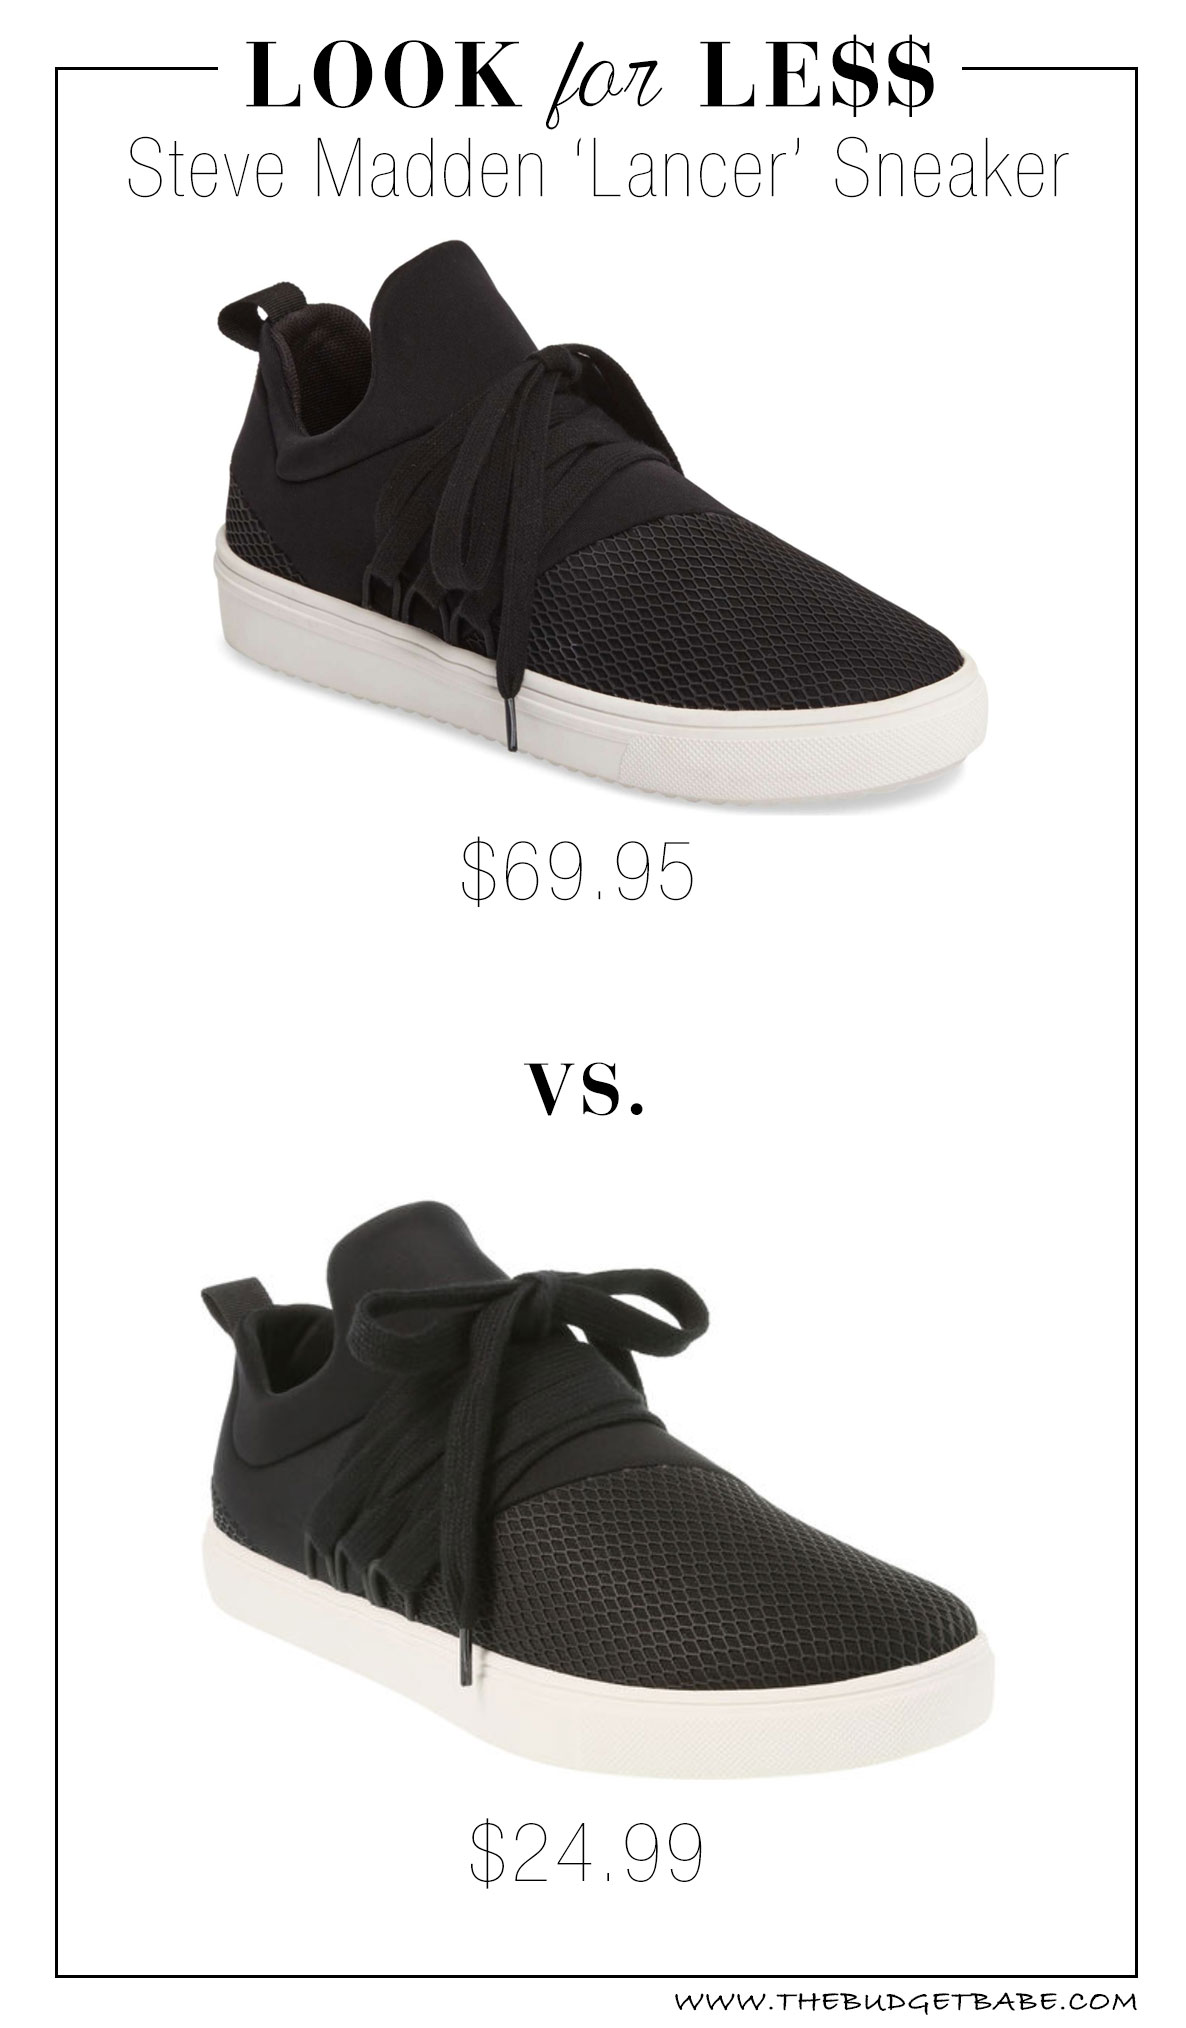 Steve Madden 'Lancer' dupes at Payless for half the price!